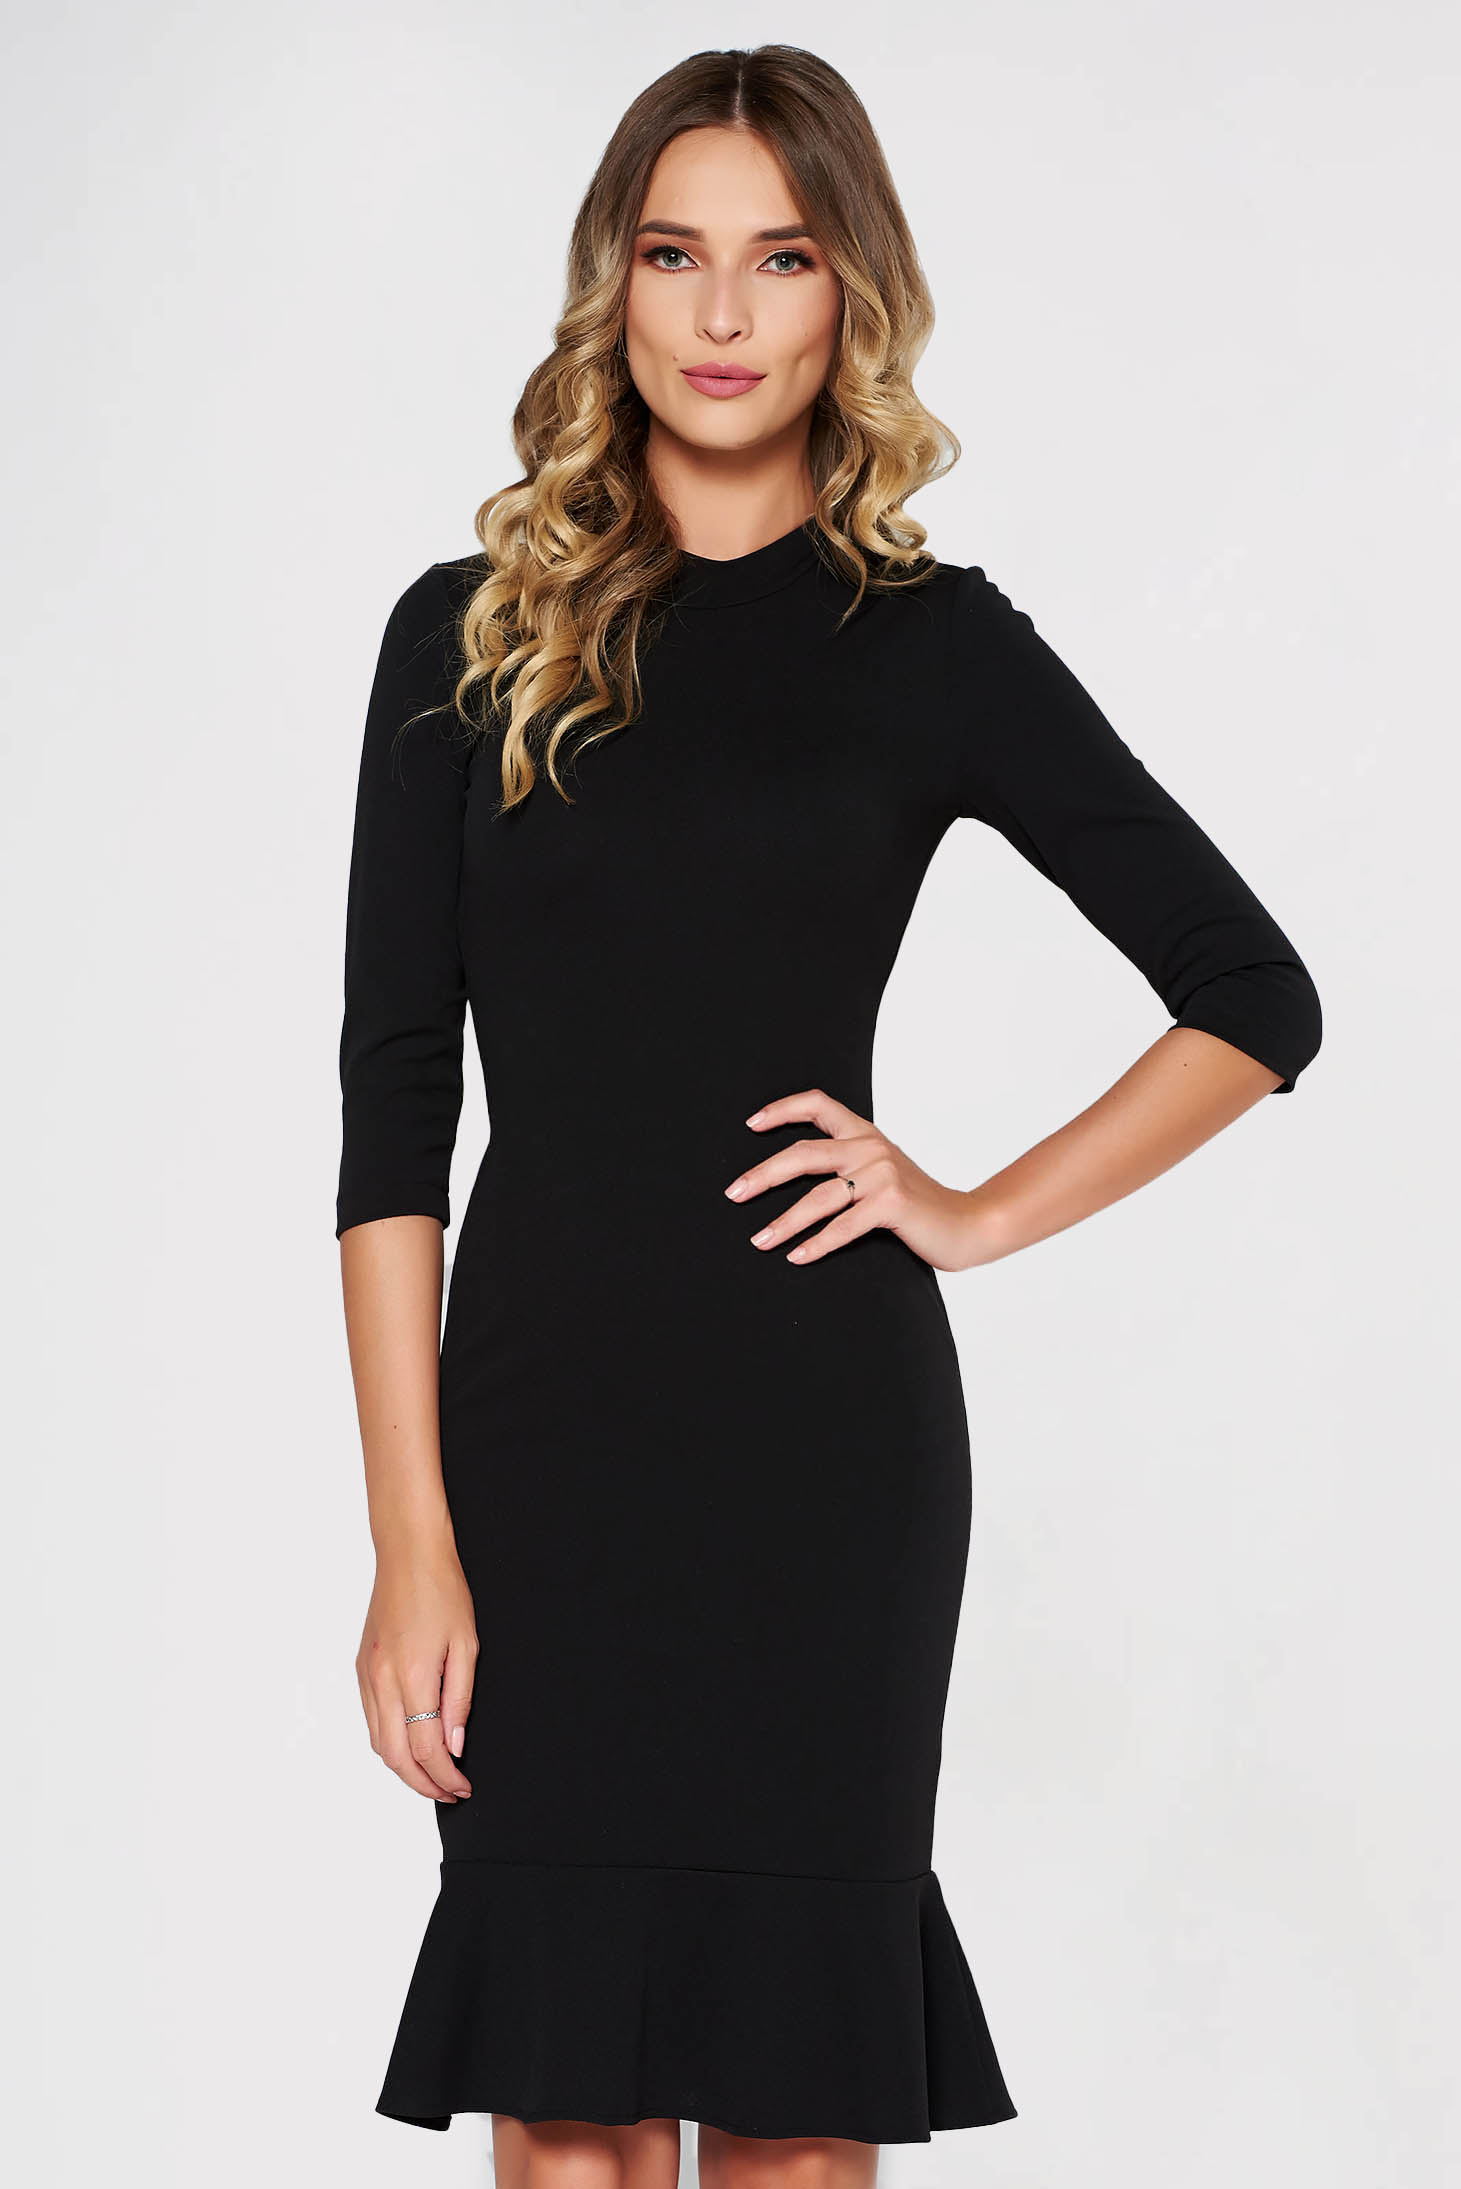 StarShinerS black dress elegant from elastic fabric with tented cut with ruffles at the buttom of the dress